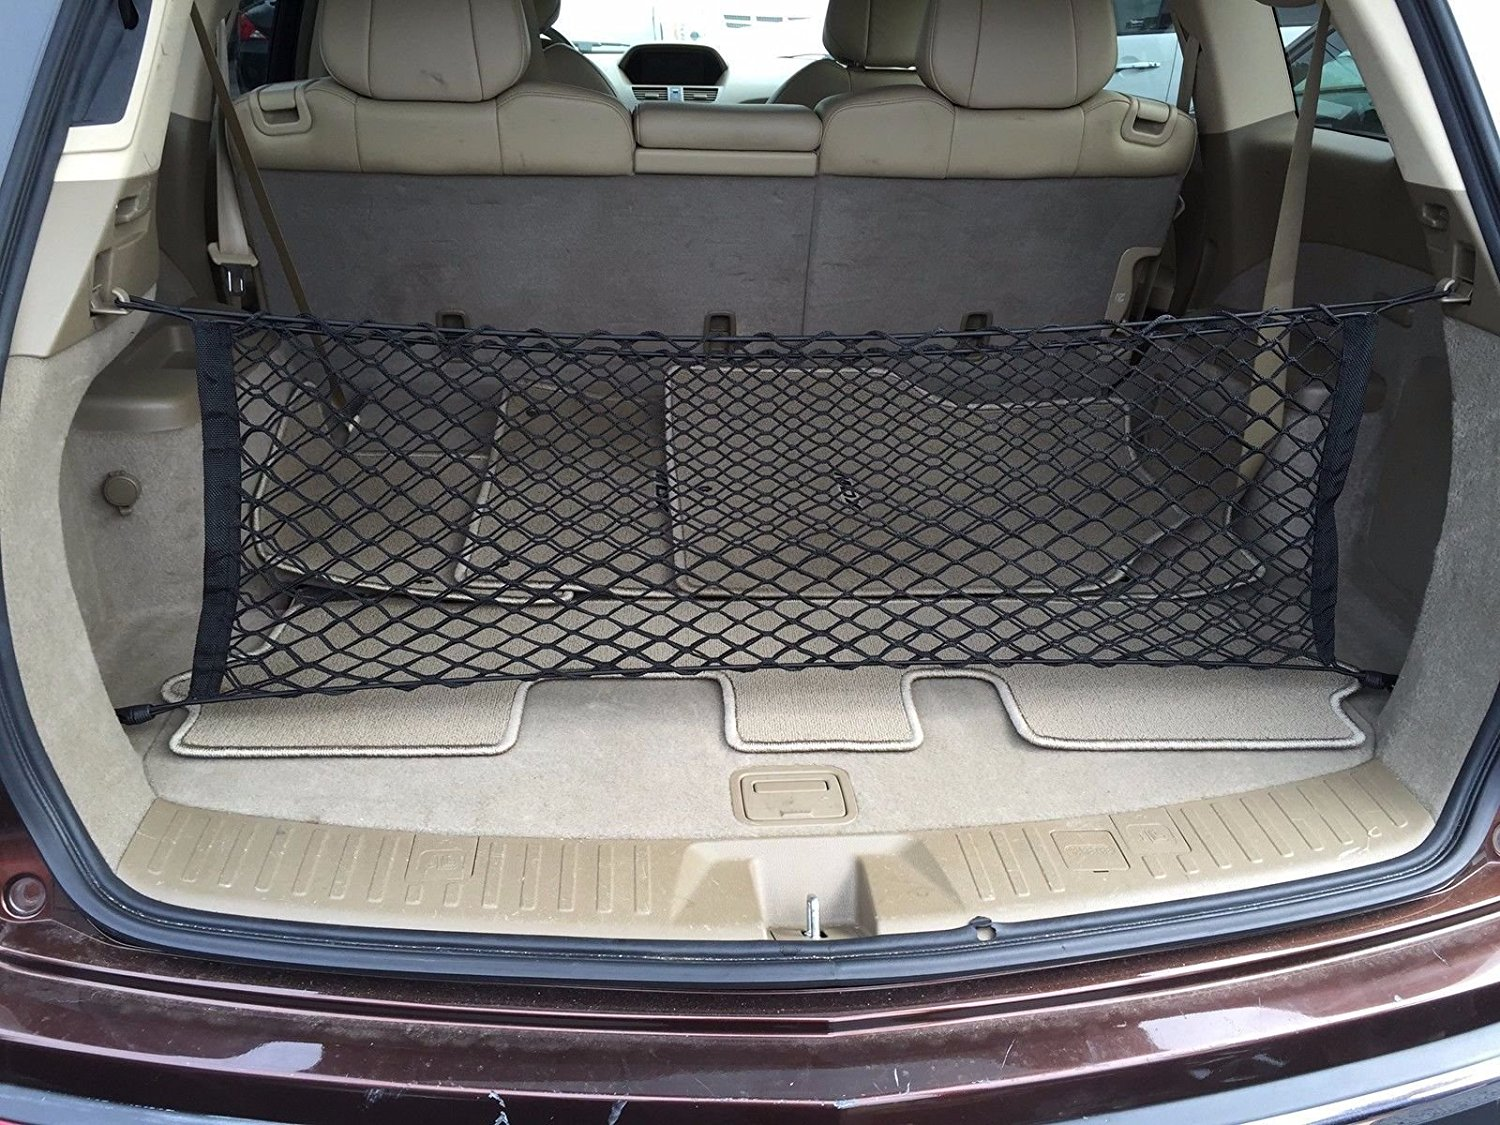 2008 2009 2010 2011 2012 Factory Style Black Luggage Carrier Rear Trunk Security Cover By Ikon Motorsports Cargo Cover Fits 2007 2013 Acura Mdx Custom Fit